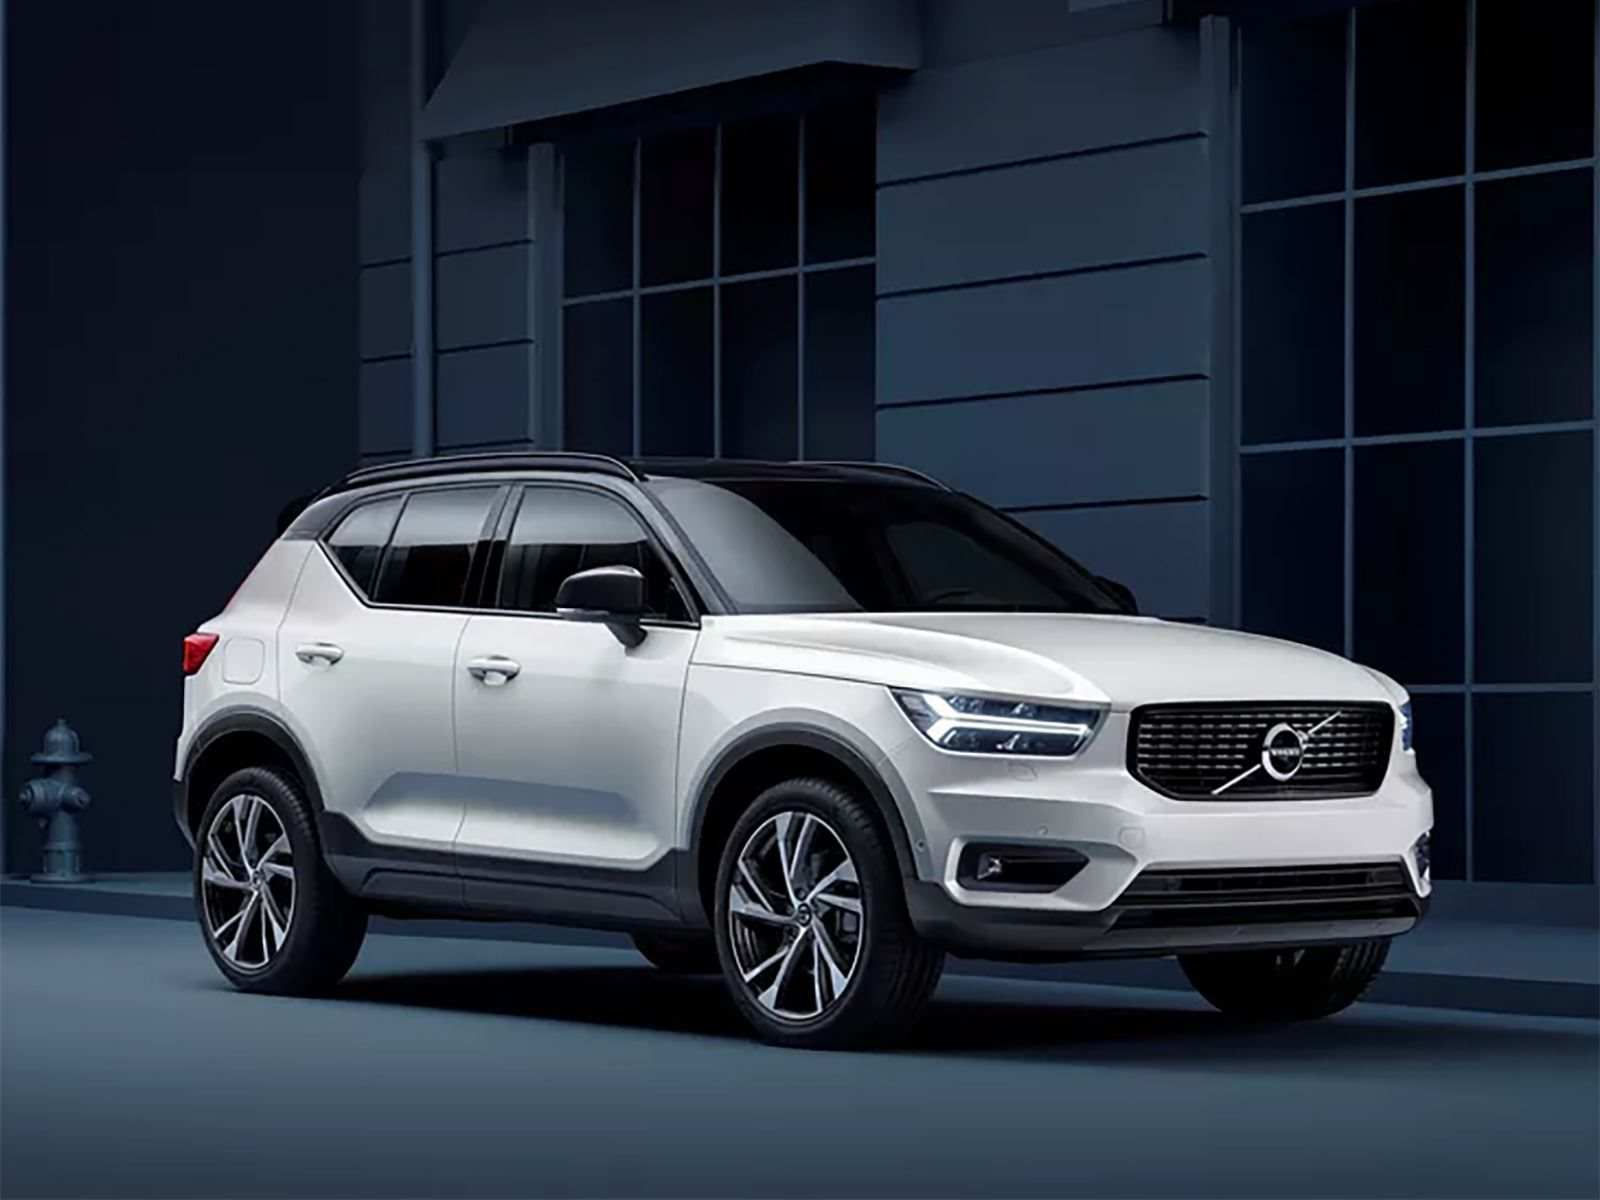 57 All New Volvo For 2020 Picture for Volvo For 2020